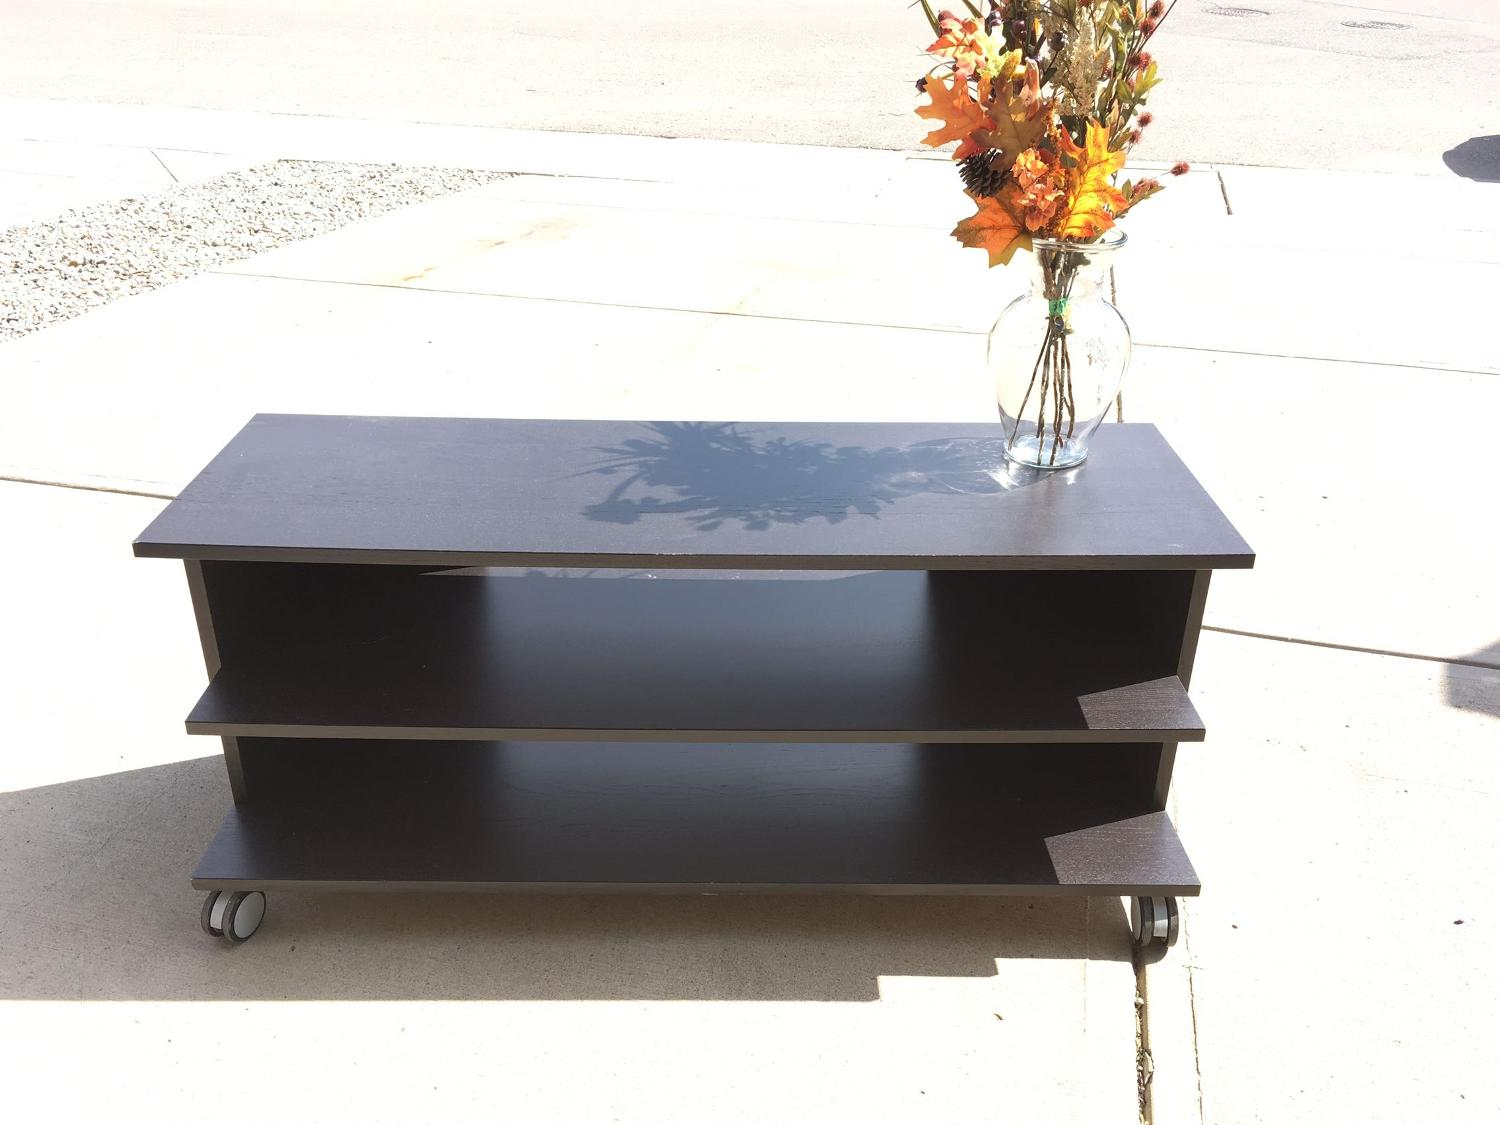 best ikea dark wood tv stand or shelf on wheels for sale in airdrie alberta for 2017. Black Bedroom Furniture Sets. Home Design Ideas